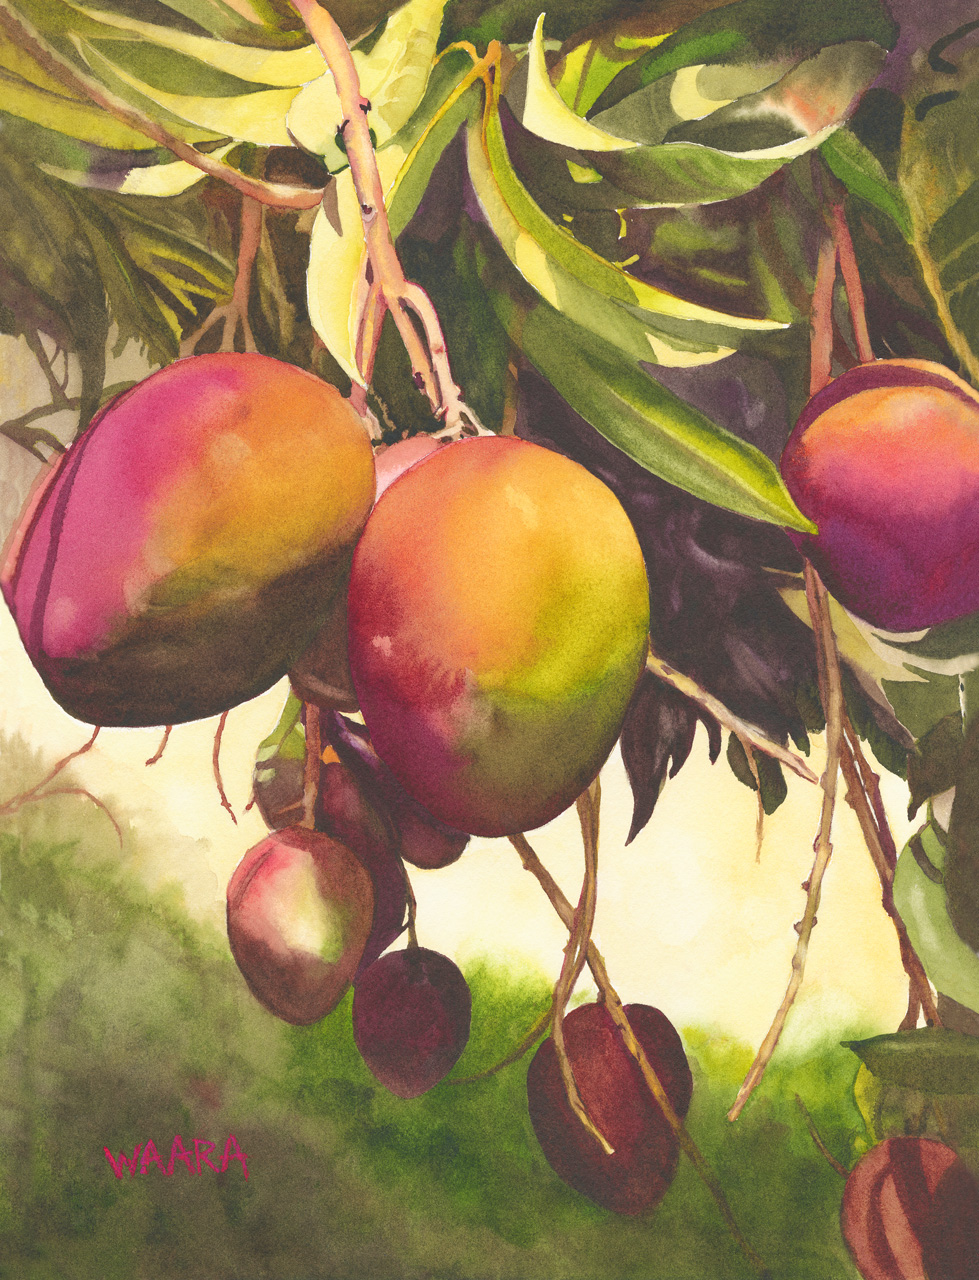 Watercolor painting of mangos hanging from a tree